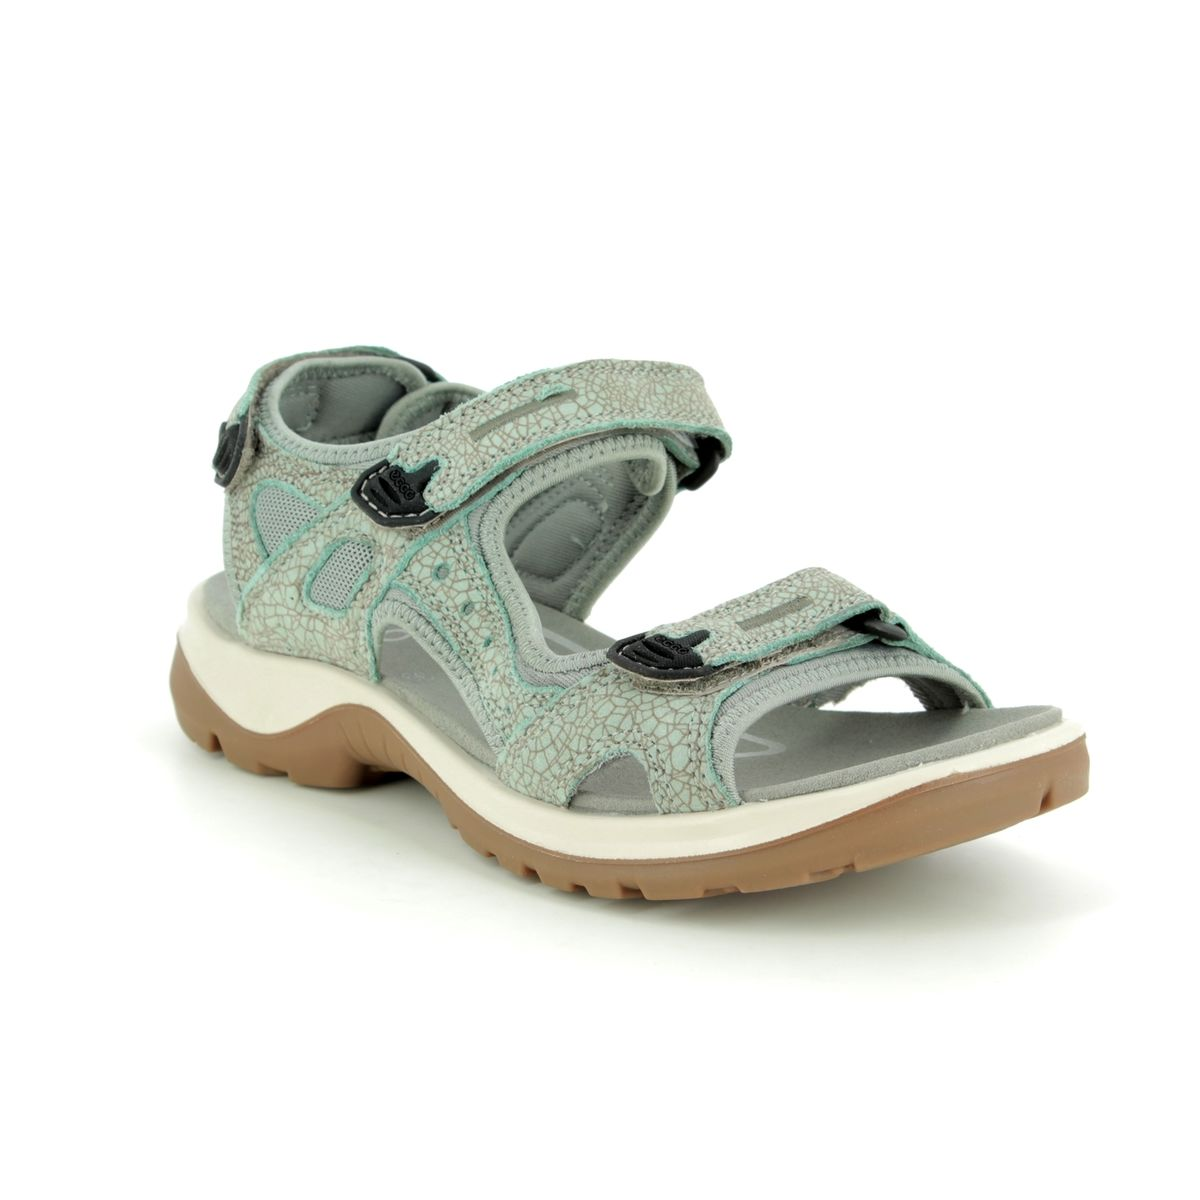 7d27d51d85 ECCO Walking Sandals - Off white - 069563/51340 OFFROAD LADY